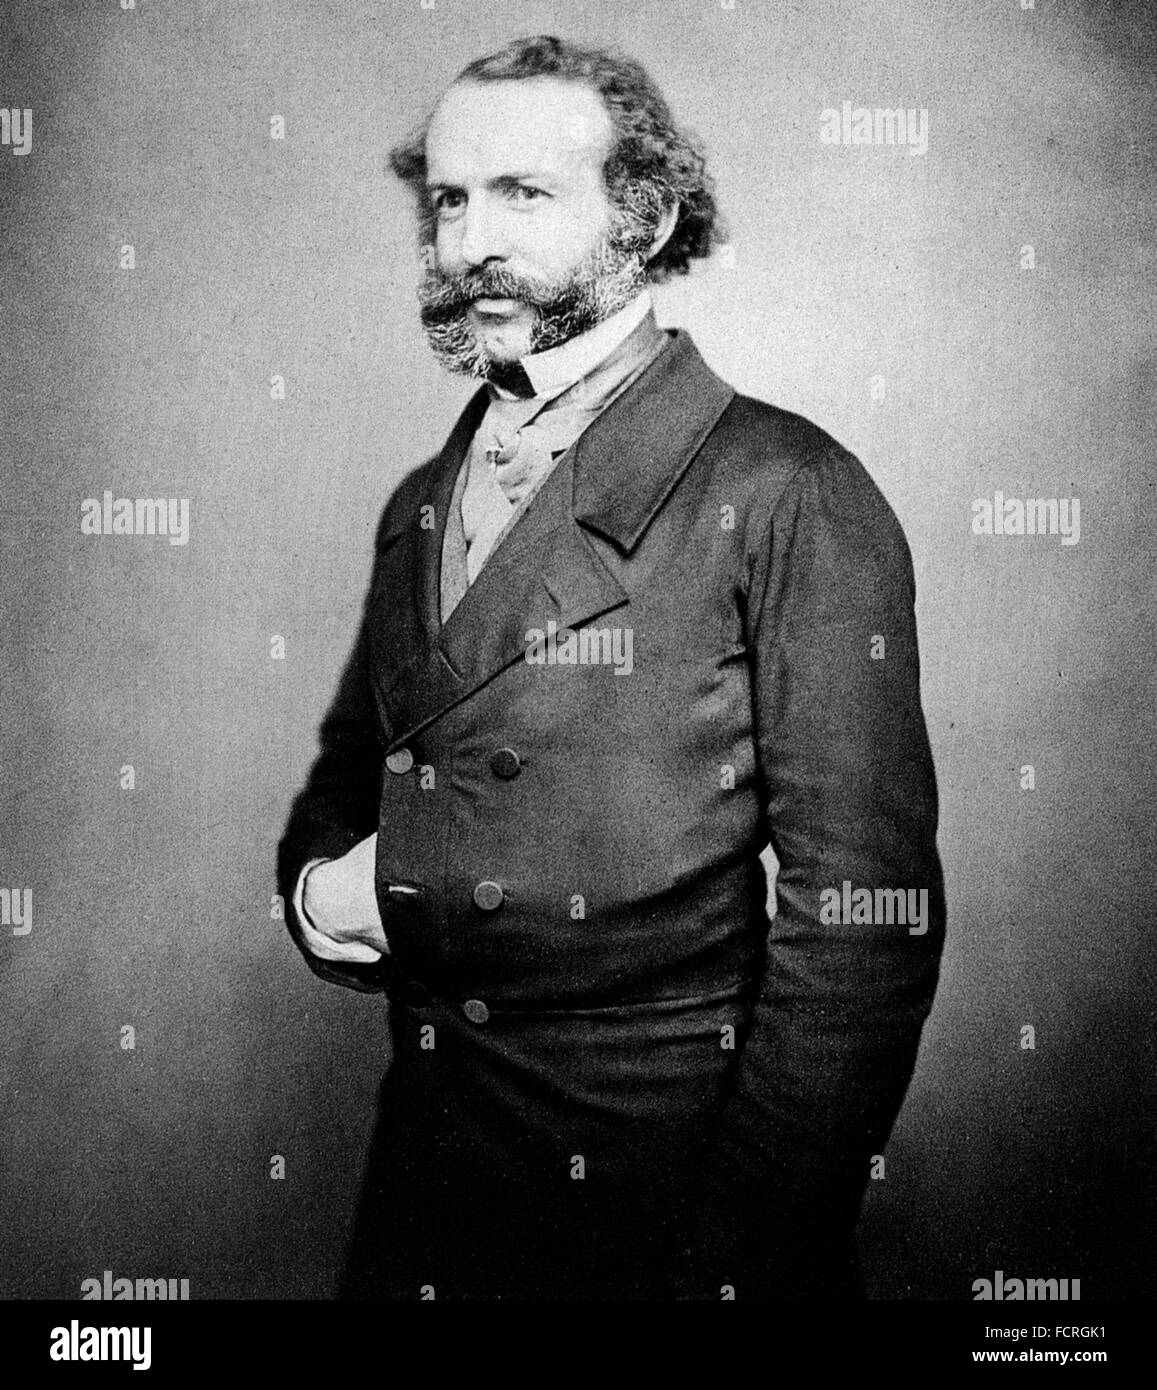 JOHN RAE (1813-1893) Scottish doctor and Arctic explorer about 1848 - Stock Image